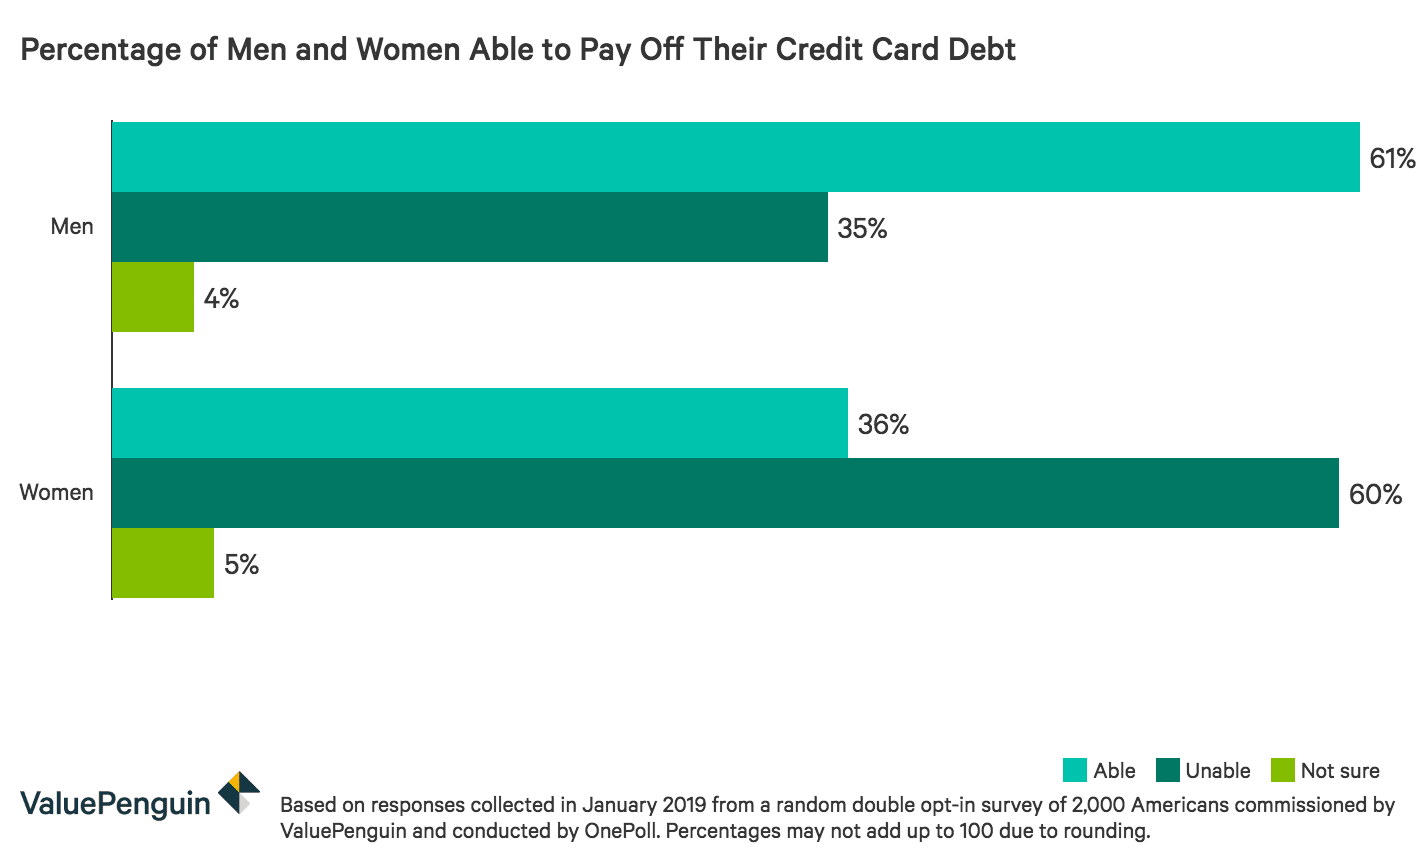 Percentage of men and women able to pay off their credit card debt